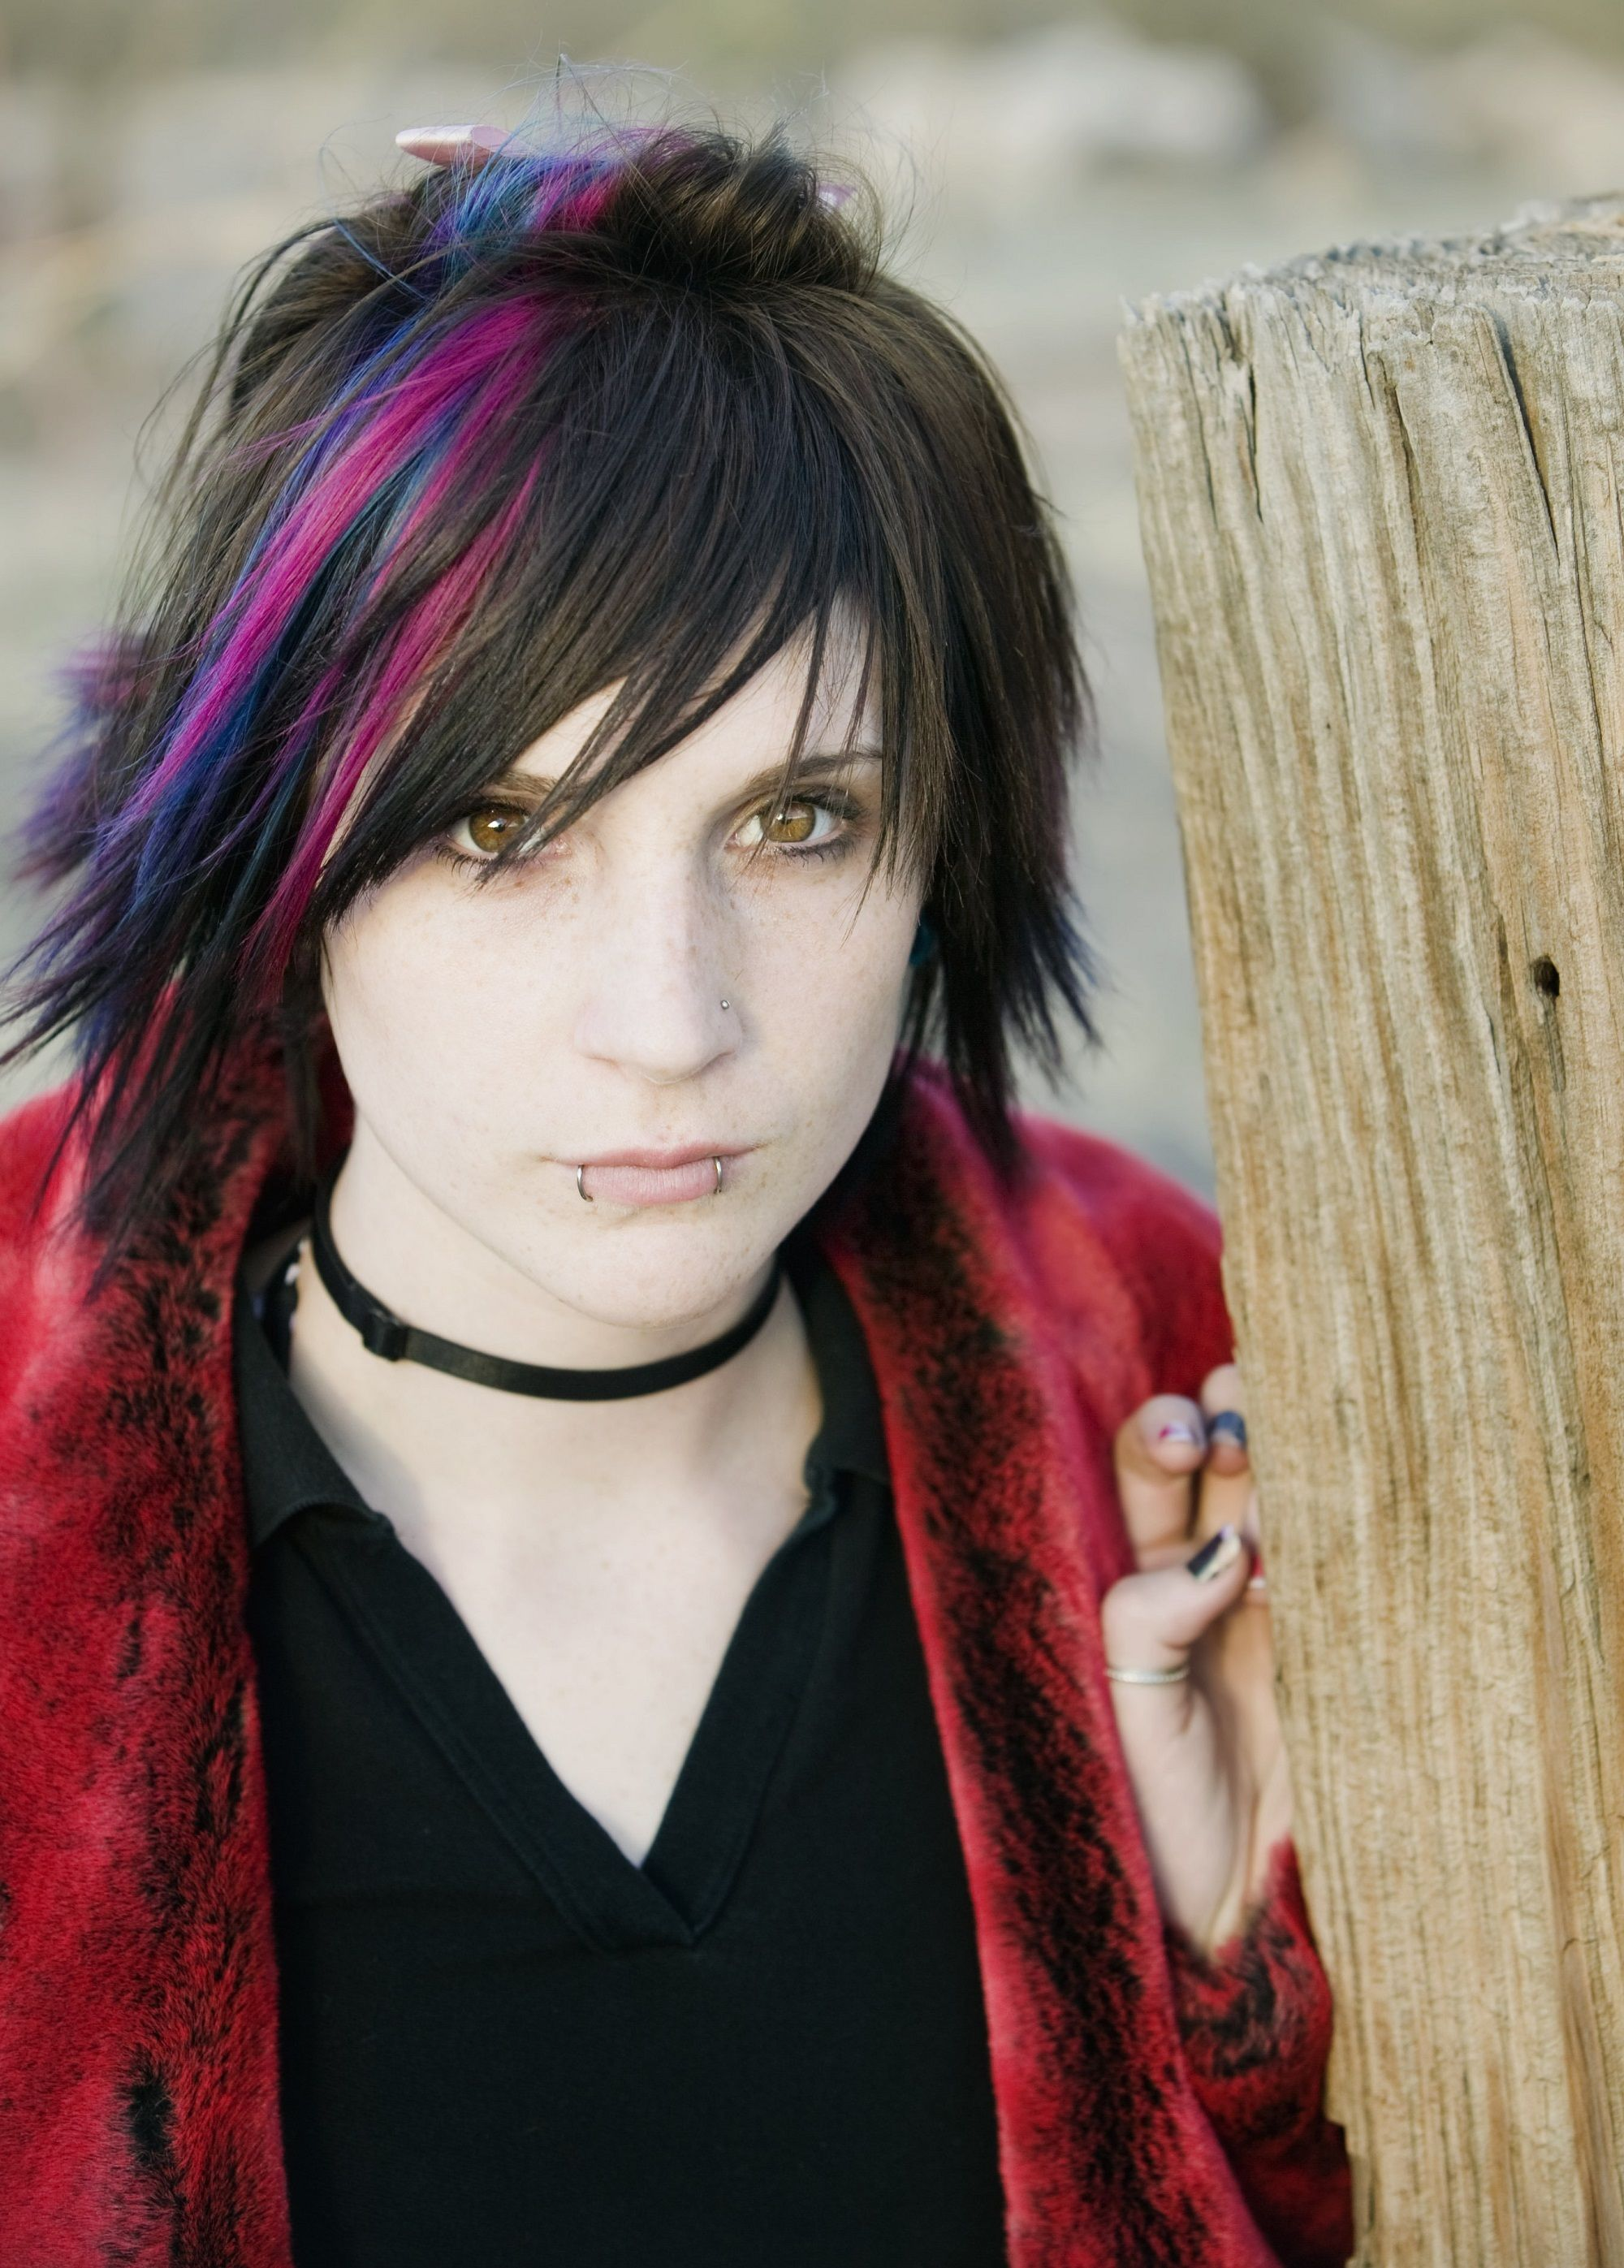 Short emo hair: Woman with short layered hair and pink highlights